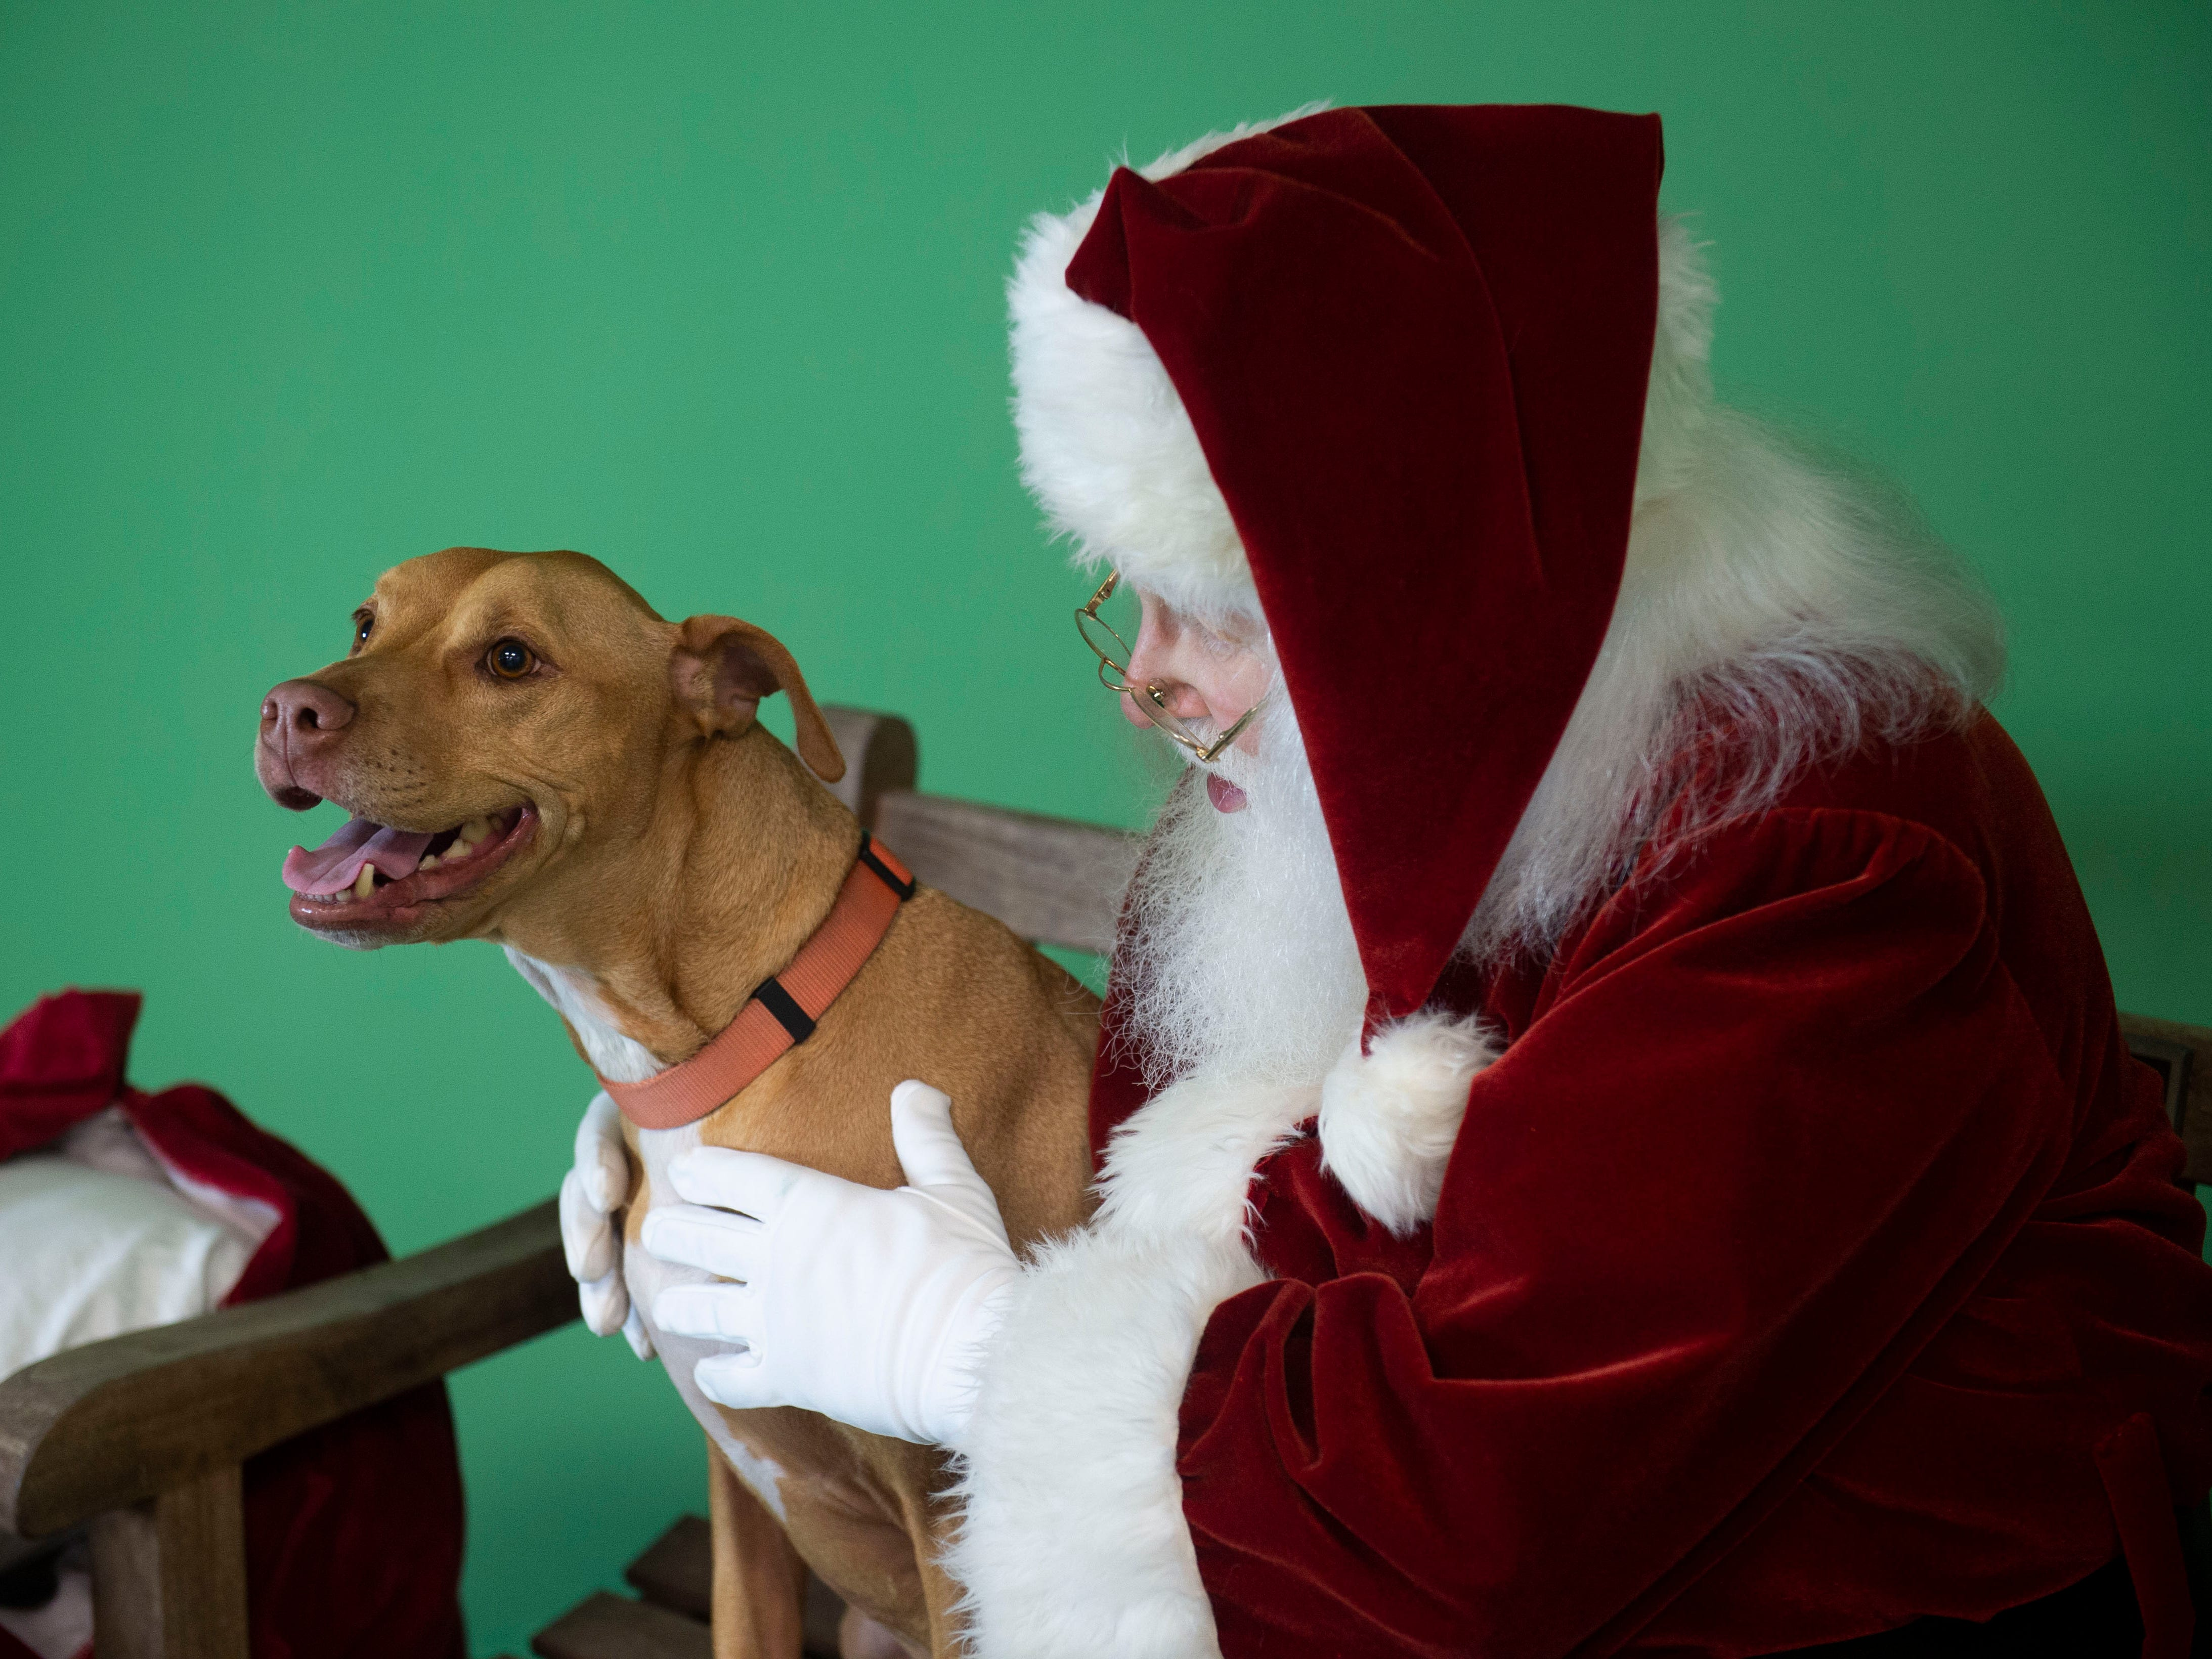 "Several pets posed for portraits with Lance Willock, dressed as Santa Claus, during the Humane Society of Vero Beach and Indian River County's annual Santa Paws photo shoot Sunday, Nov. 4, 2018 at the Humane Society Thrift Store in Vero Beach. Willock is used to meeting children during the holiday season, but enjoys greeting the animals and helping out with the fundraiser. ""They're different than children but they all have personalities. Once they get acquainted with Santa it's interesting to see how they all react to Santa, almost like children somewhat,"" Willock said."